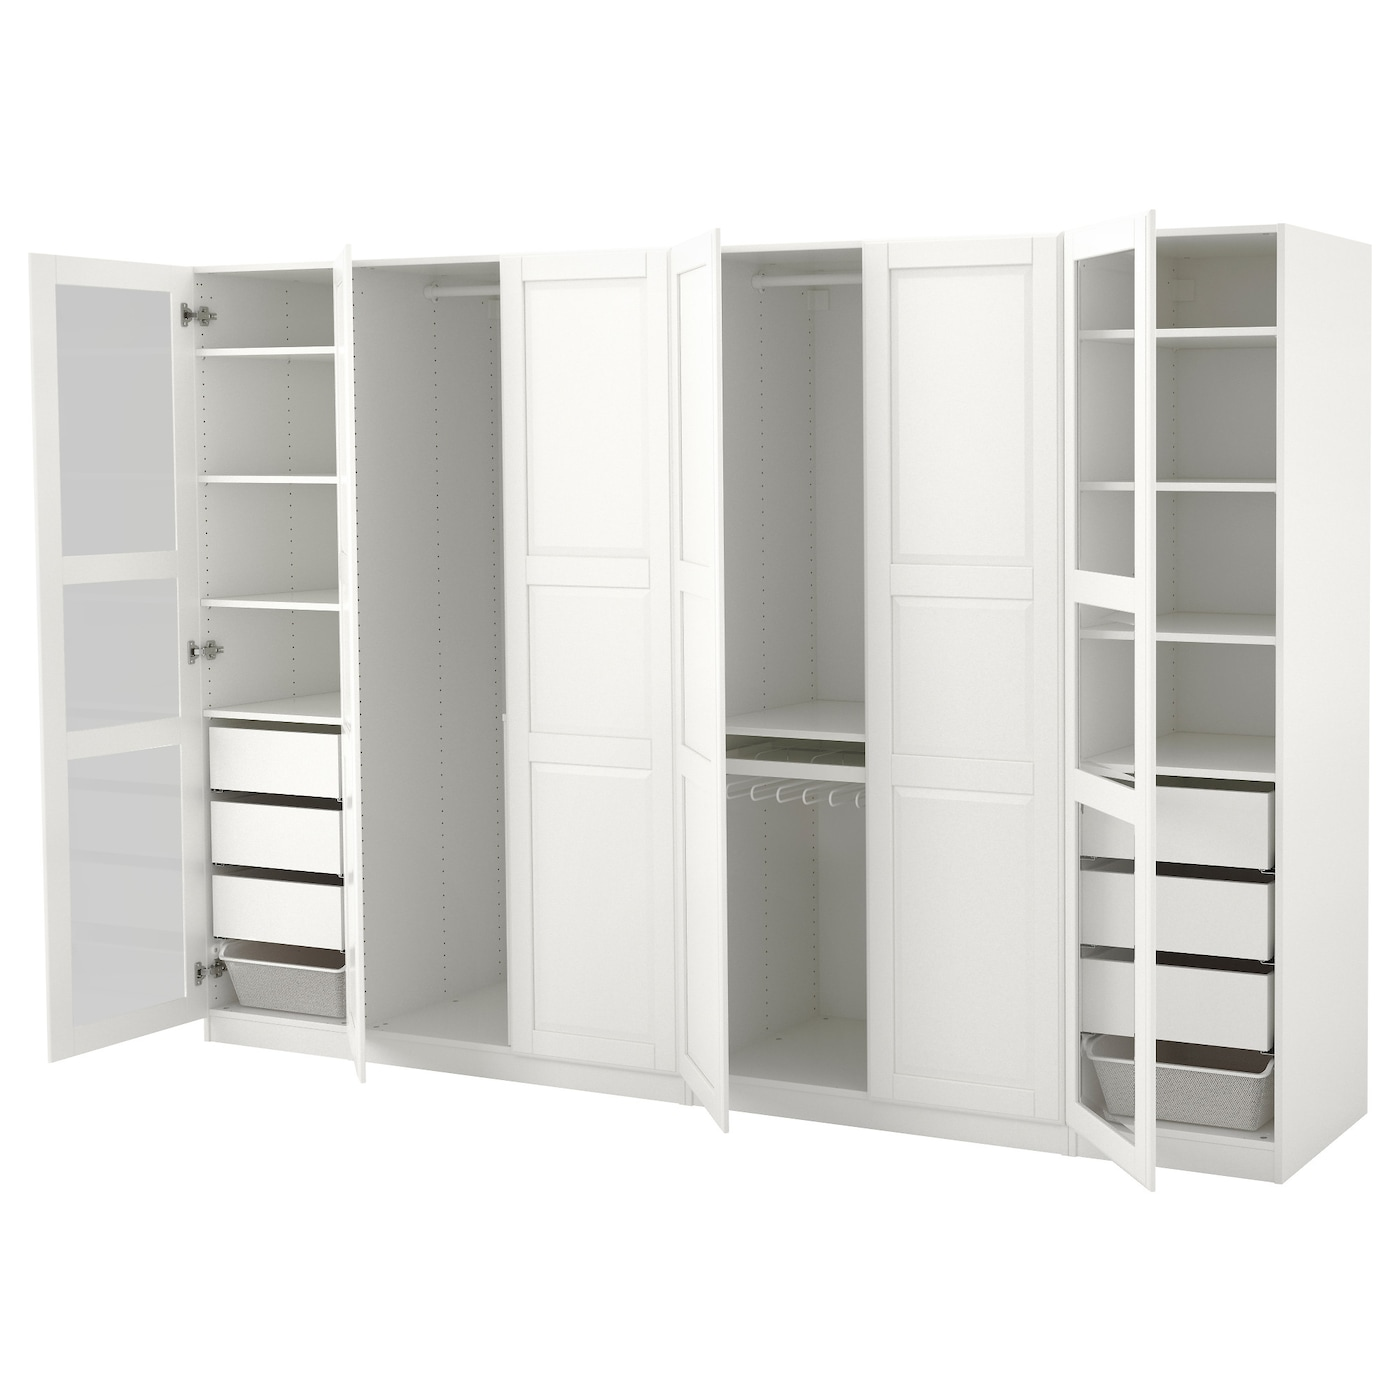 pax wardrobe white tyssedal tyssedal glass 300x60x201 cm. Black Bedroom Furniture Sets. Home Design Ideas